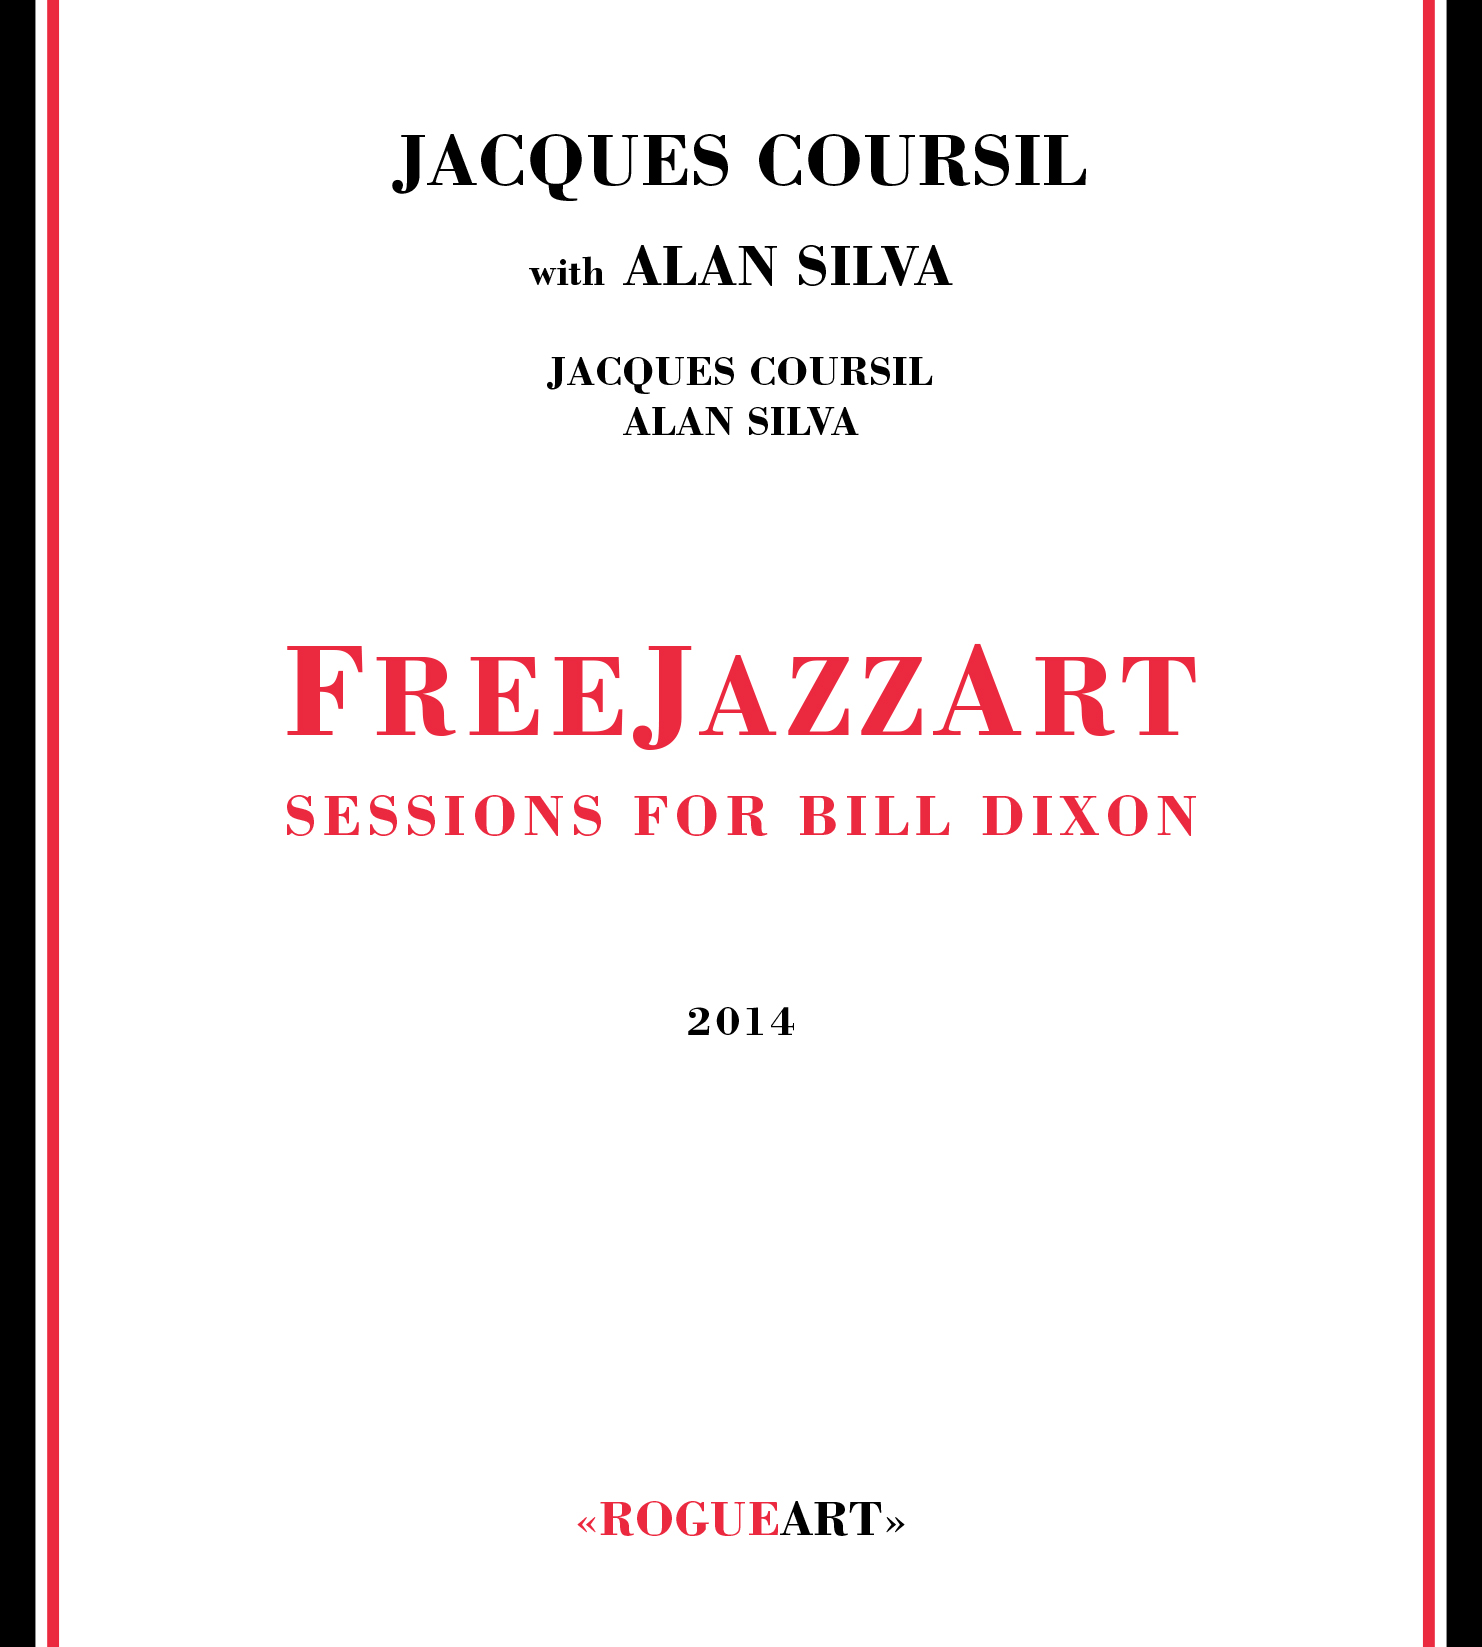 Front cover of the albul FREEJAZZART